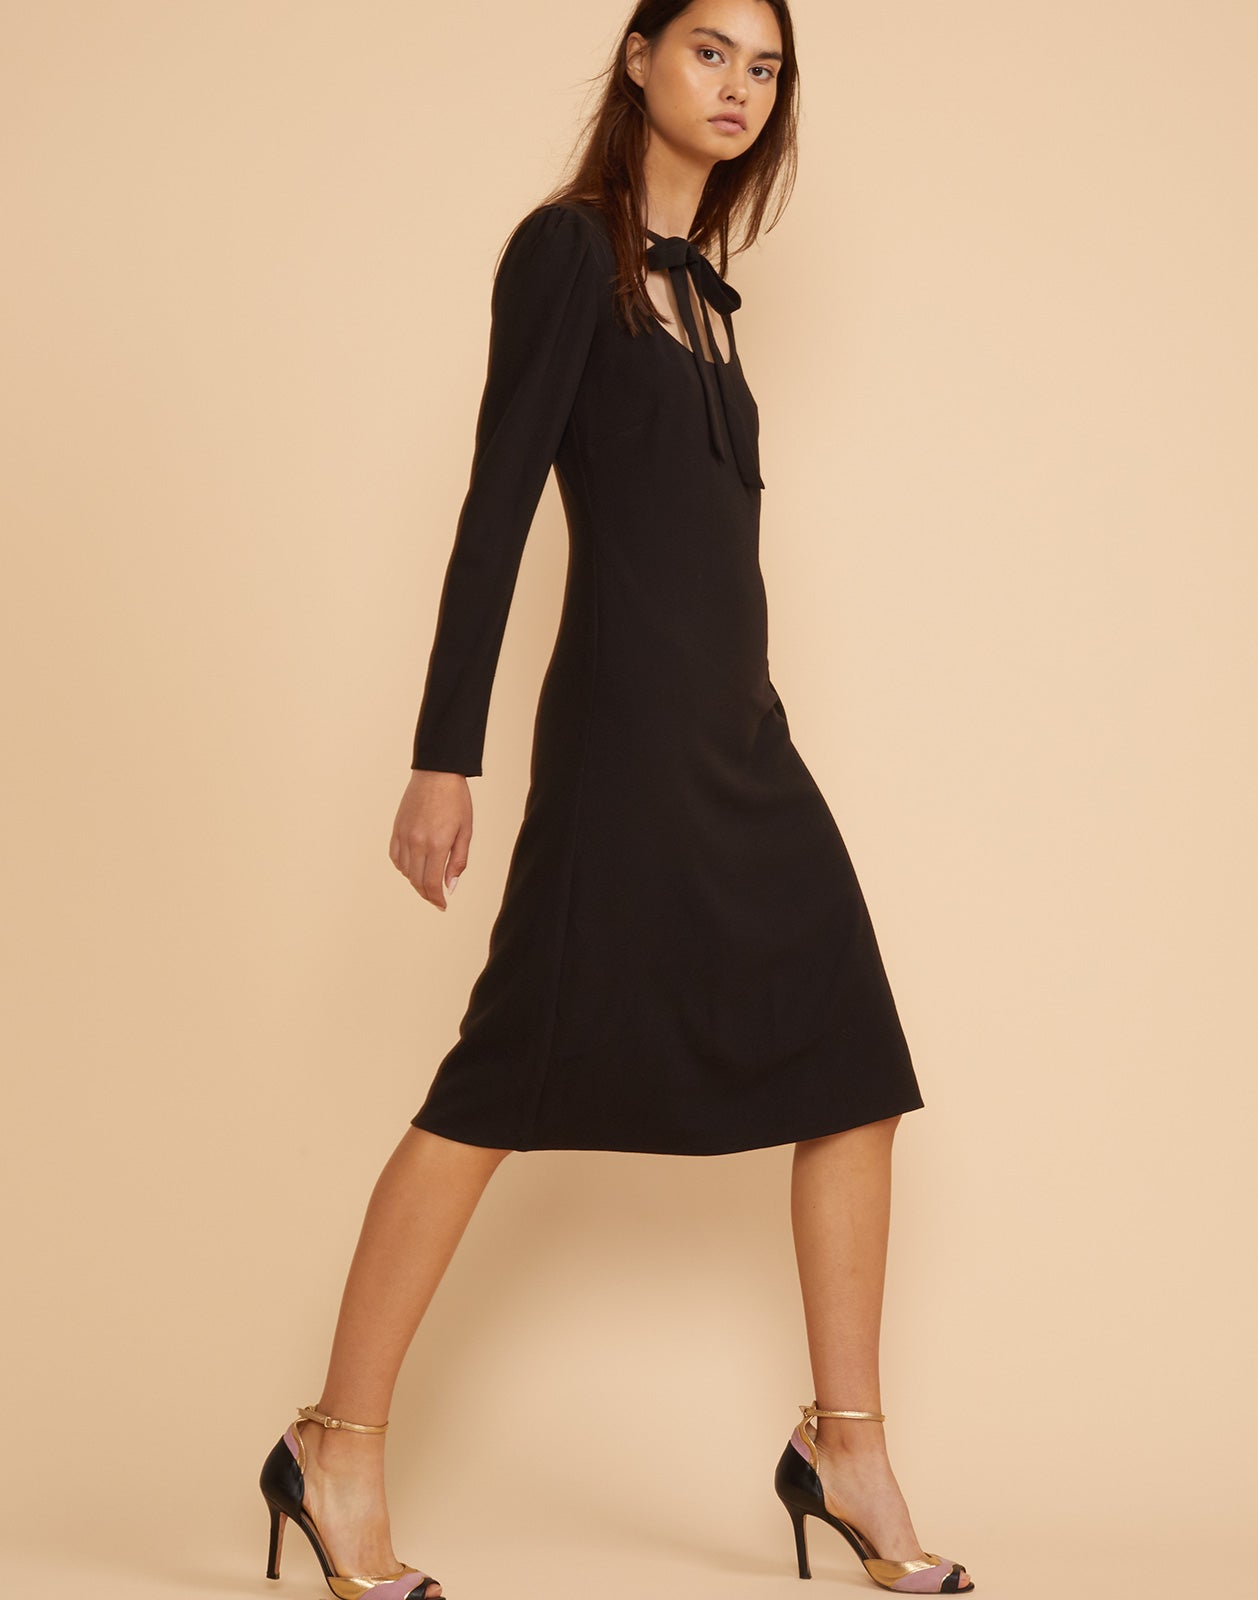 Side view of the Waverly neck tie dress in black crepe.